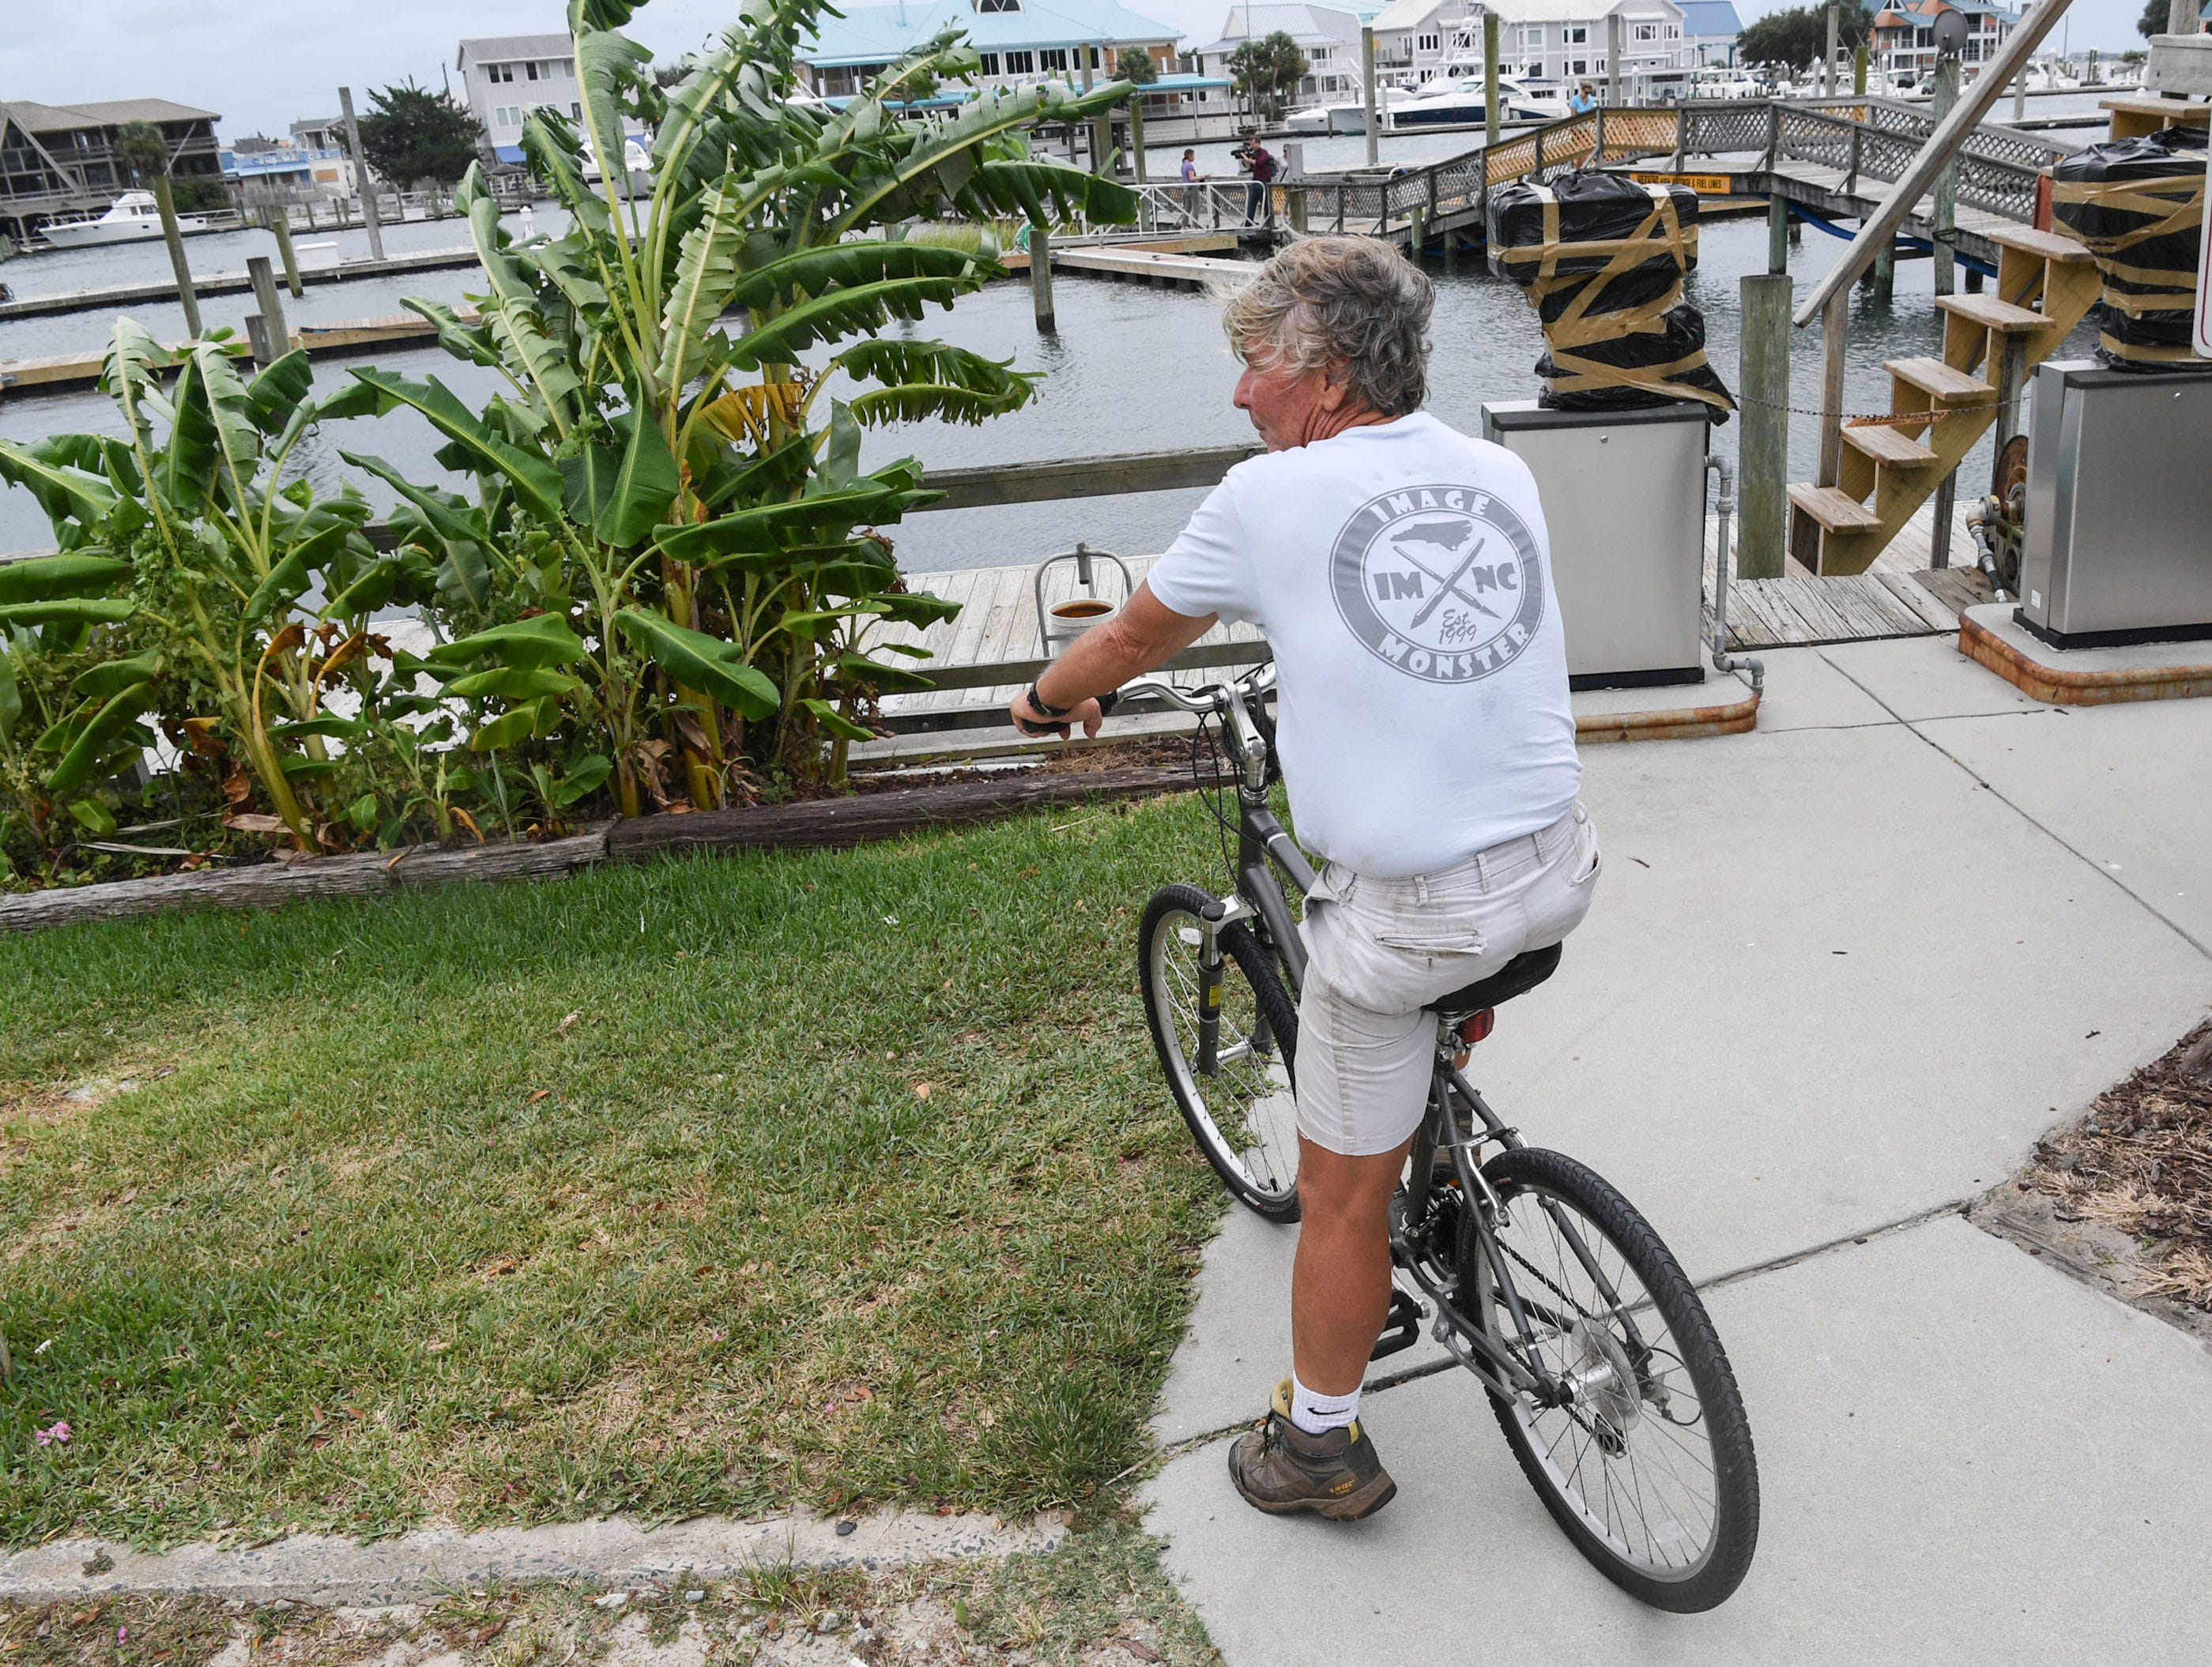 Jimmy Arnoux of Wilmington, N.C. watches a windy gust at Wrightville Beach marina in Wilmington, North Carolina on Thursday, September 13, 2018. (Ken Ruinard / Greenville News / Gannett USA Today Network / 2018 )